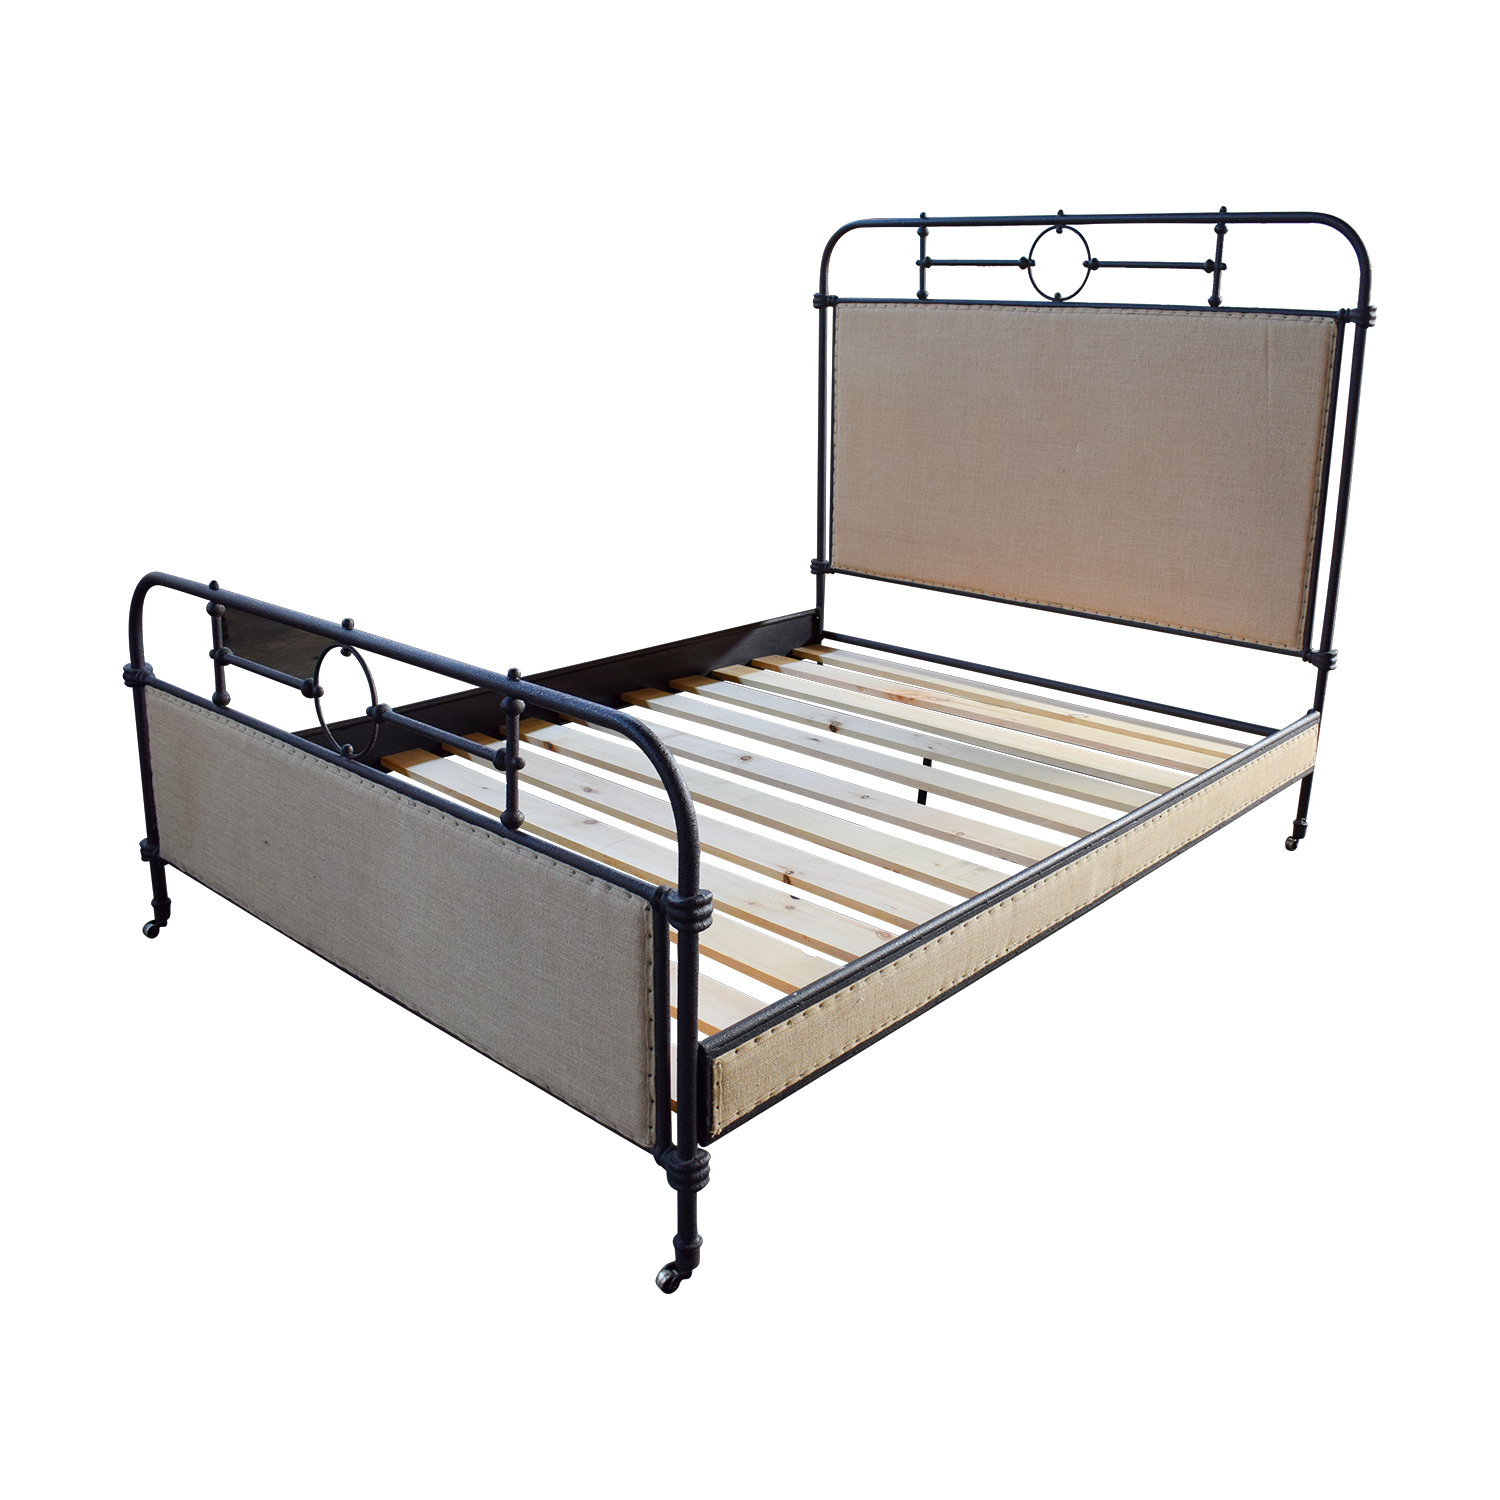 62 Off Abc Home Abc Home Upholstered Metal Queen Bed Beds